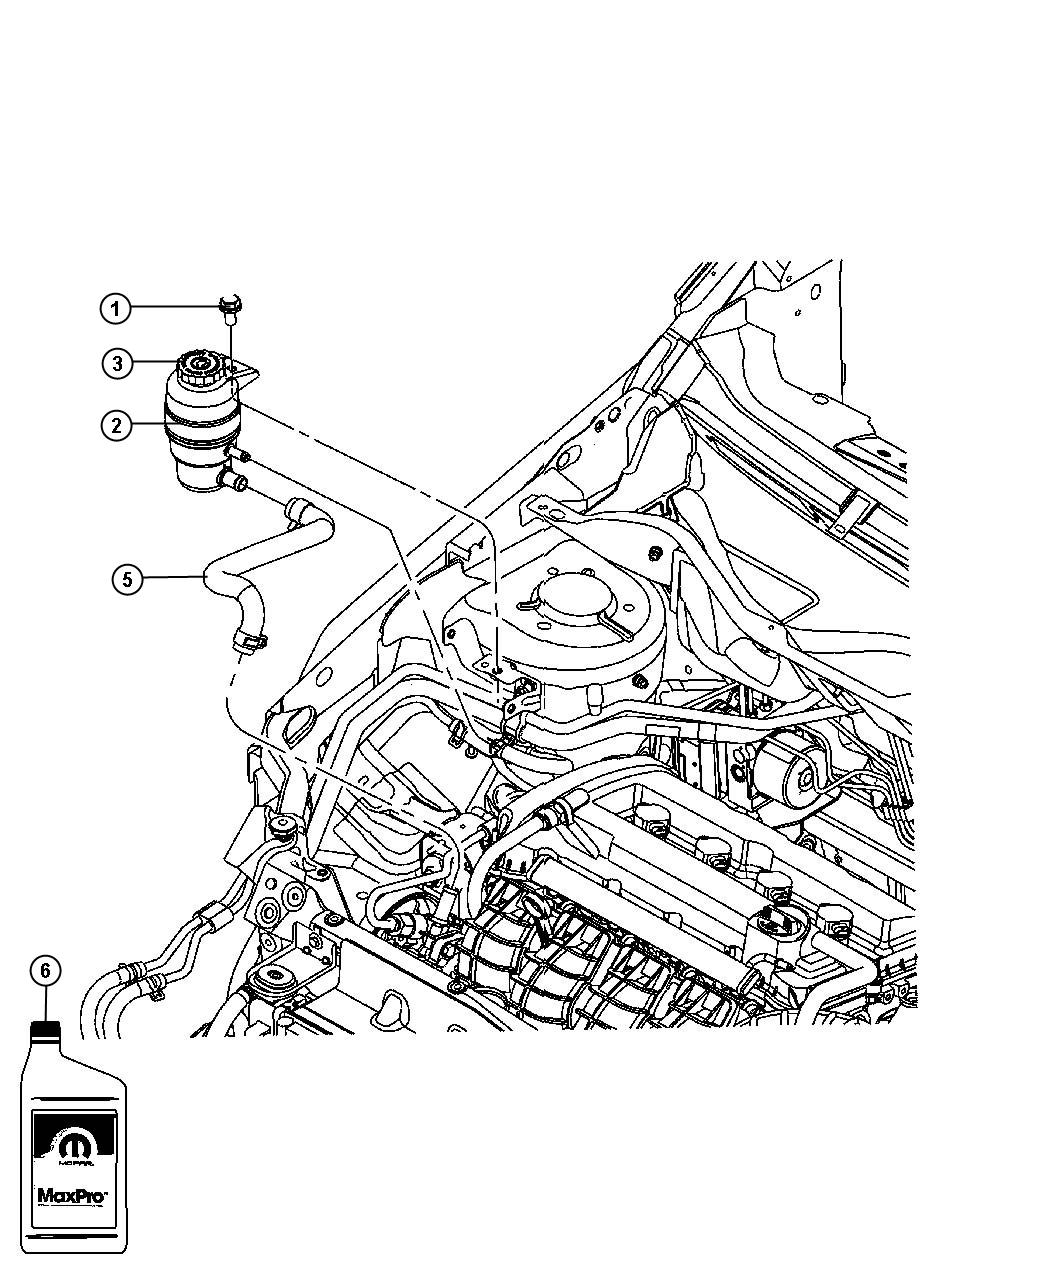 Jeep Patriot Bolt Screw Used For Screw And Washer Hex